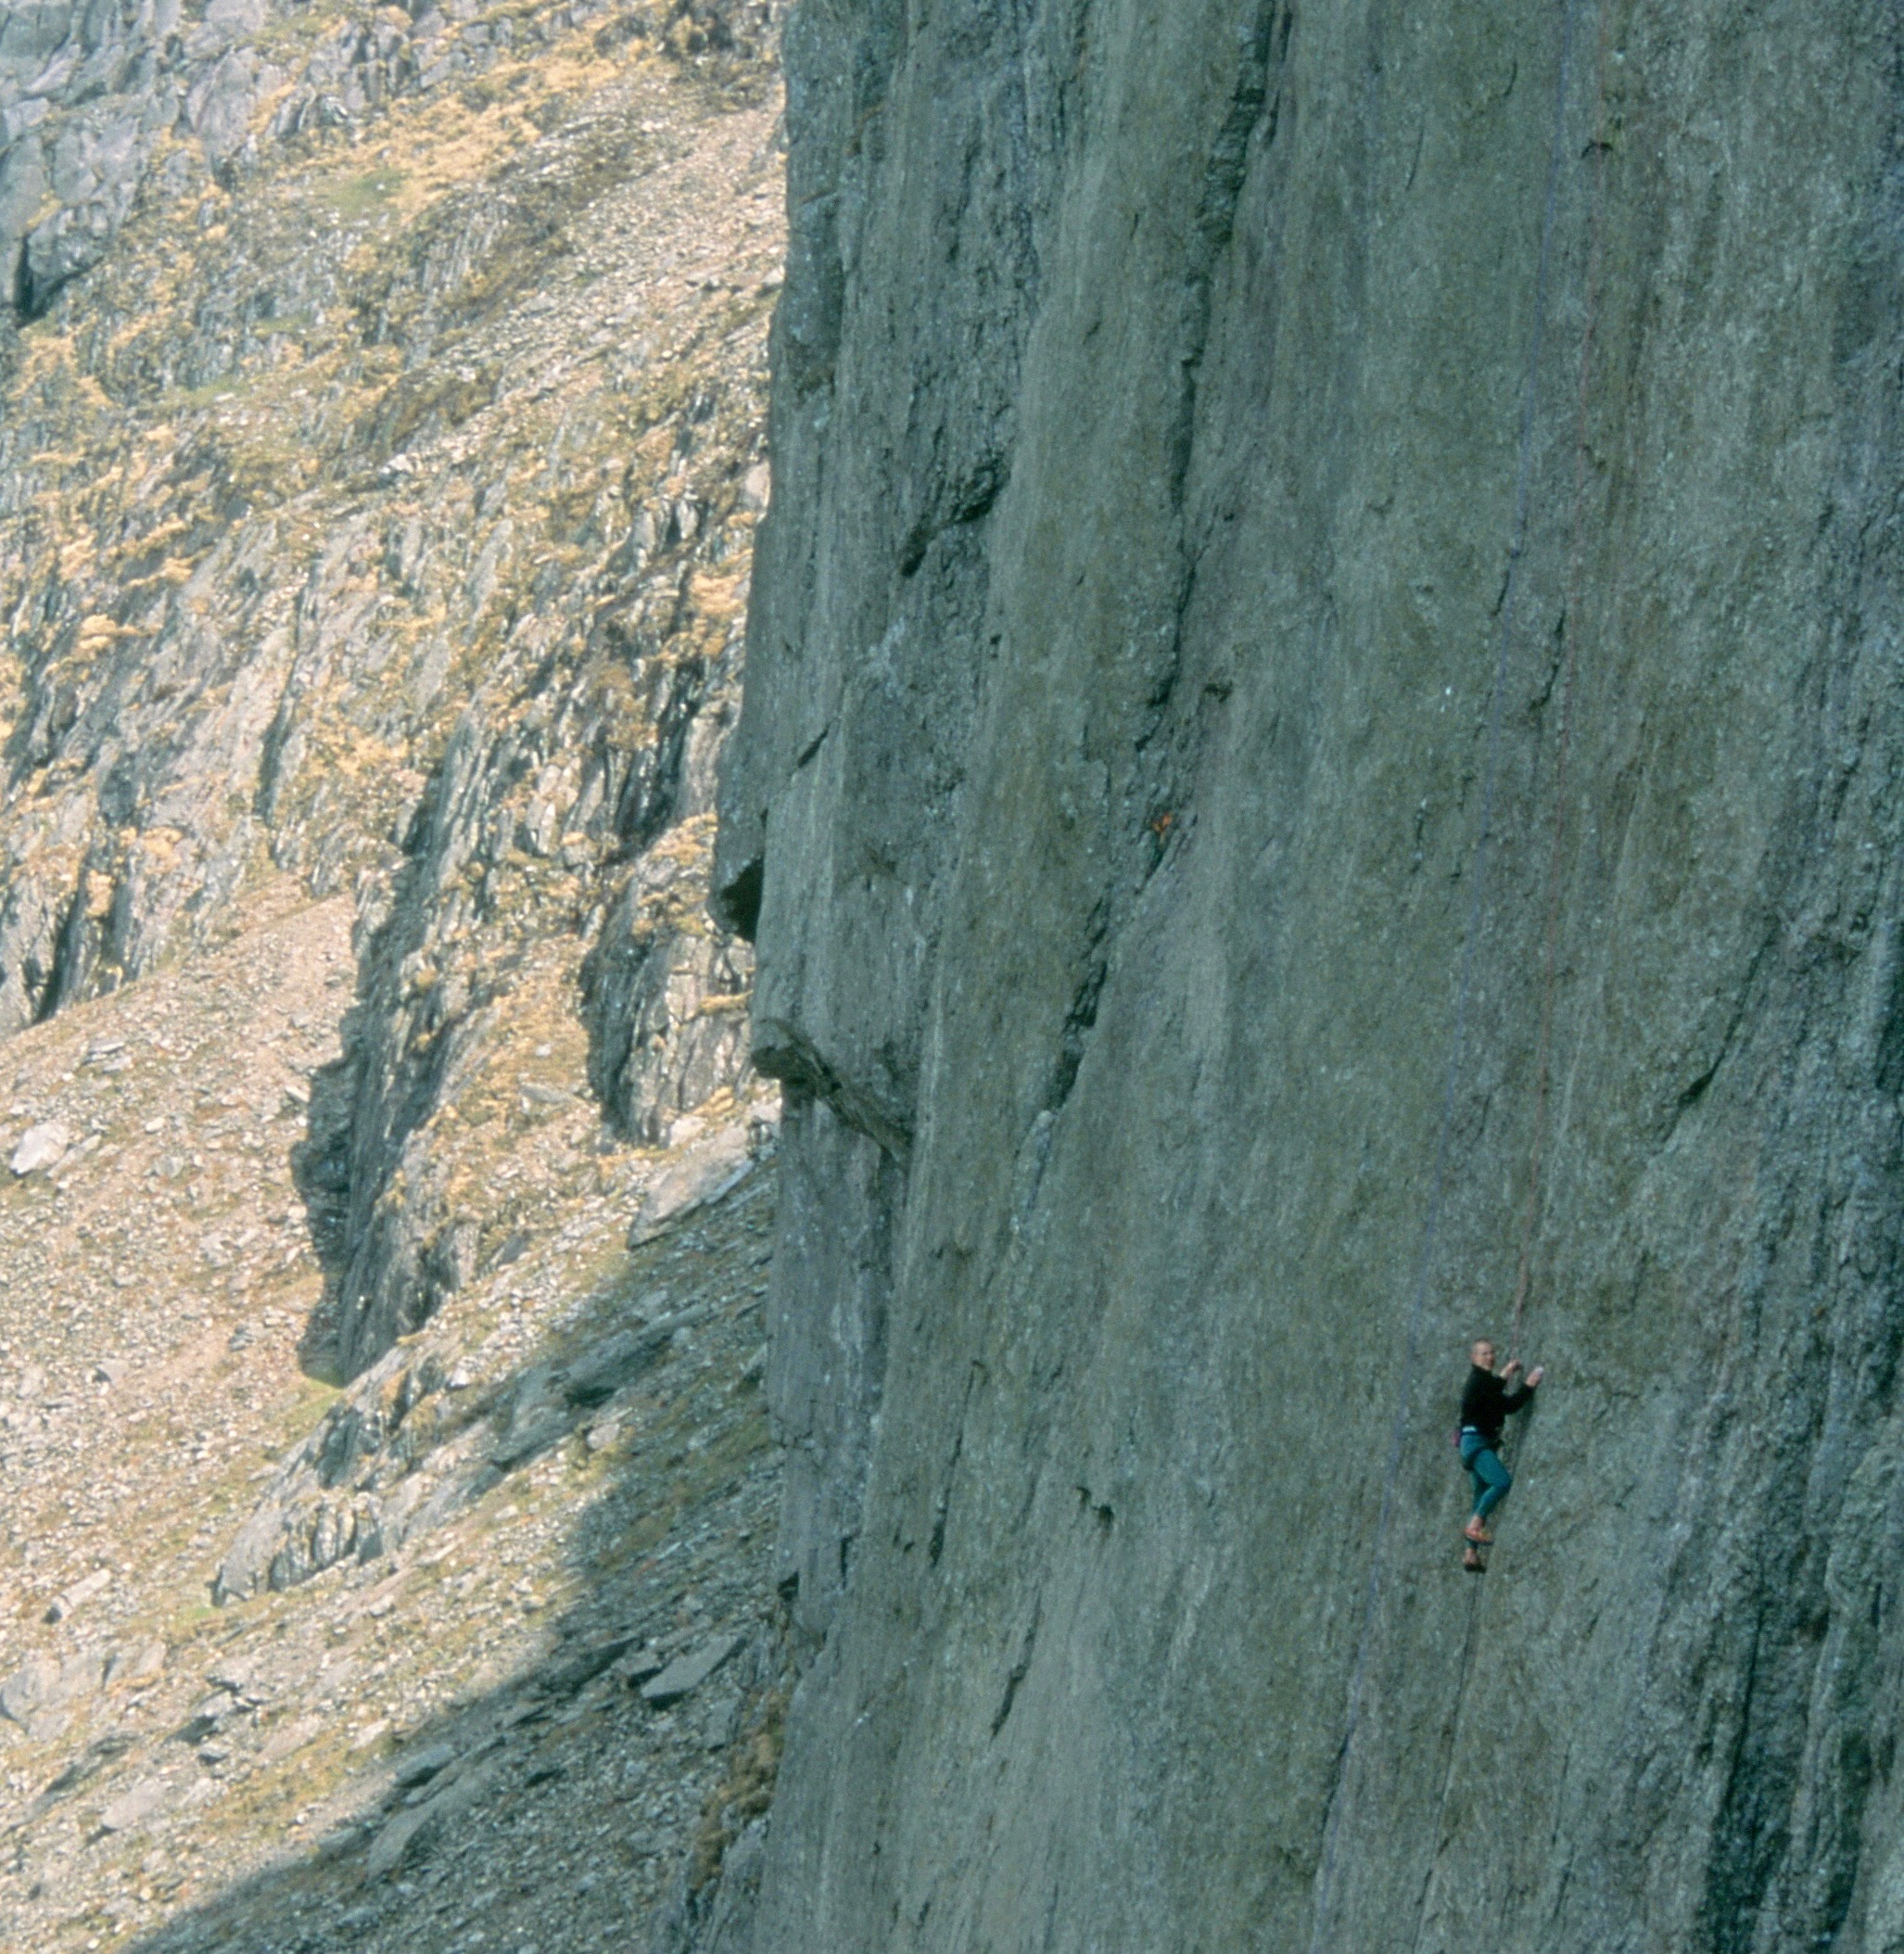 Indian Face E9 6c, Cloggy, UK. This ascent in 1995.  Photo: Gresham collection